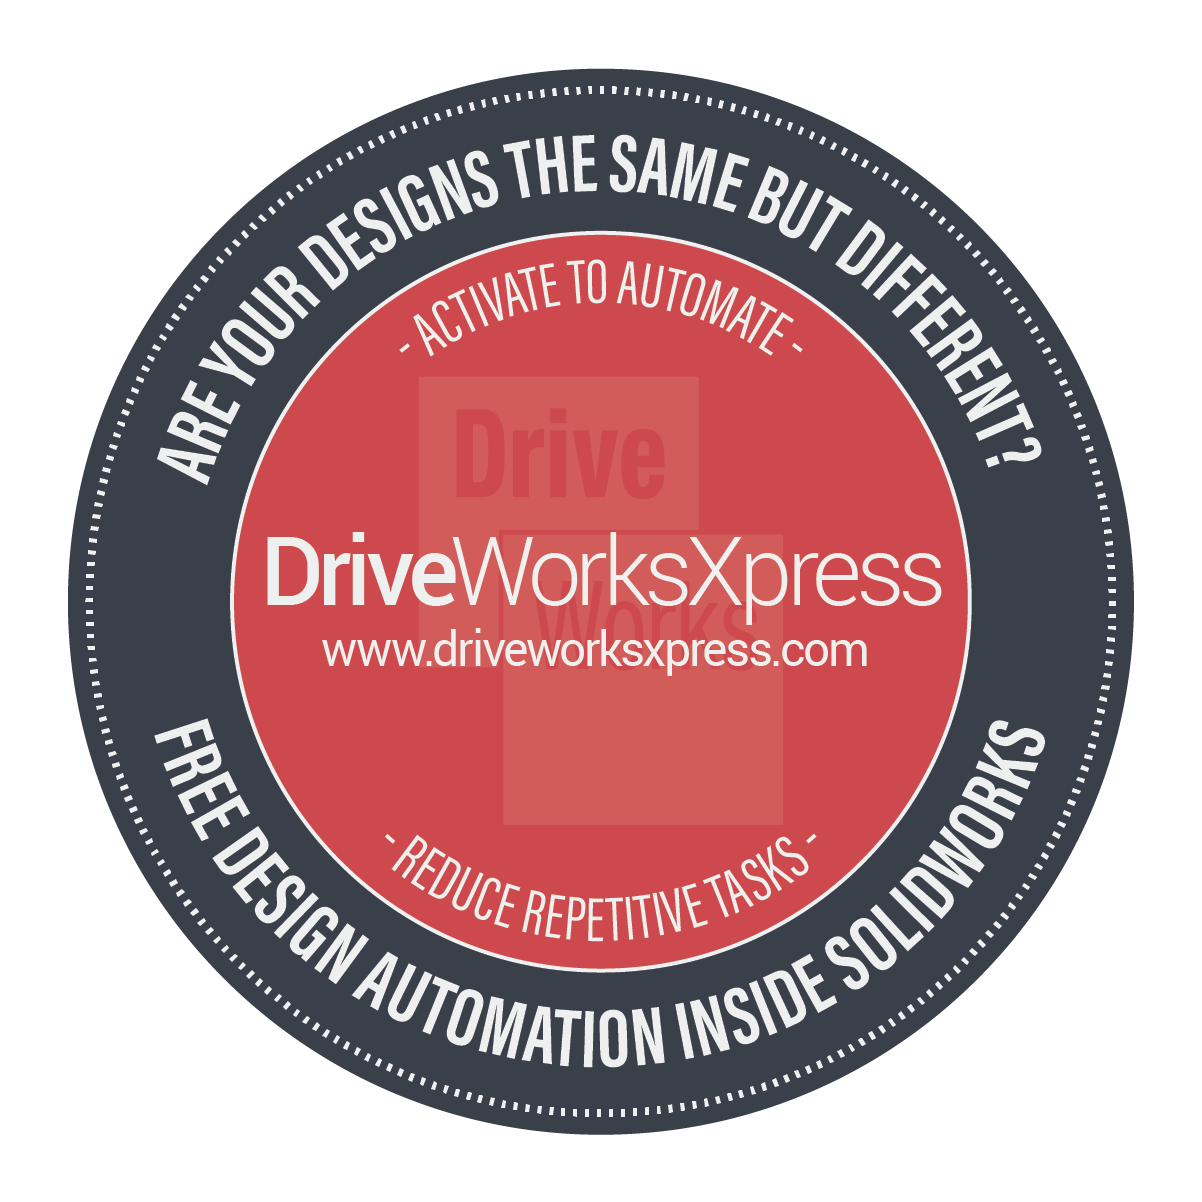 DriveWorksXpress Activate to Automate Front